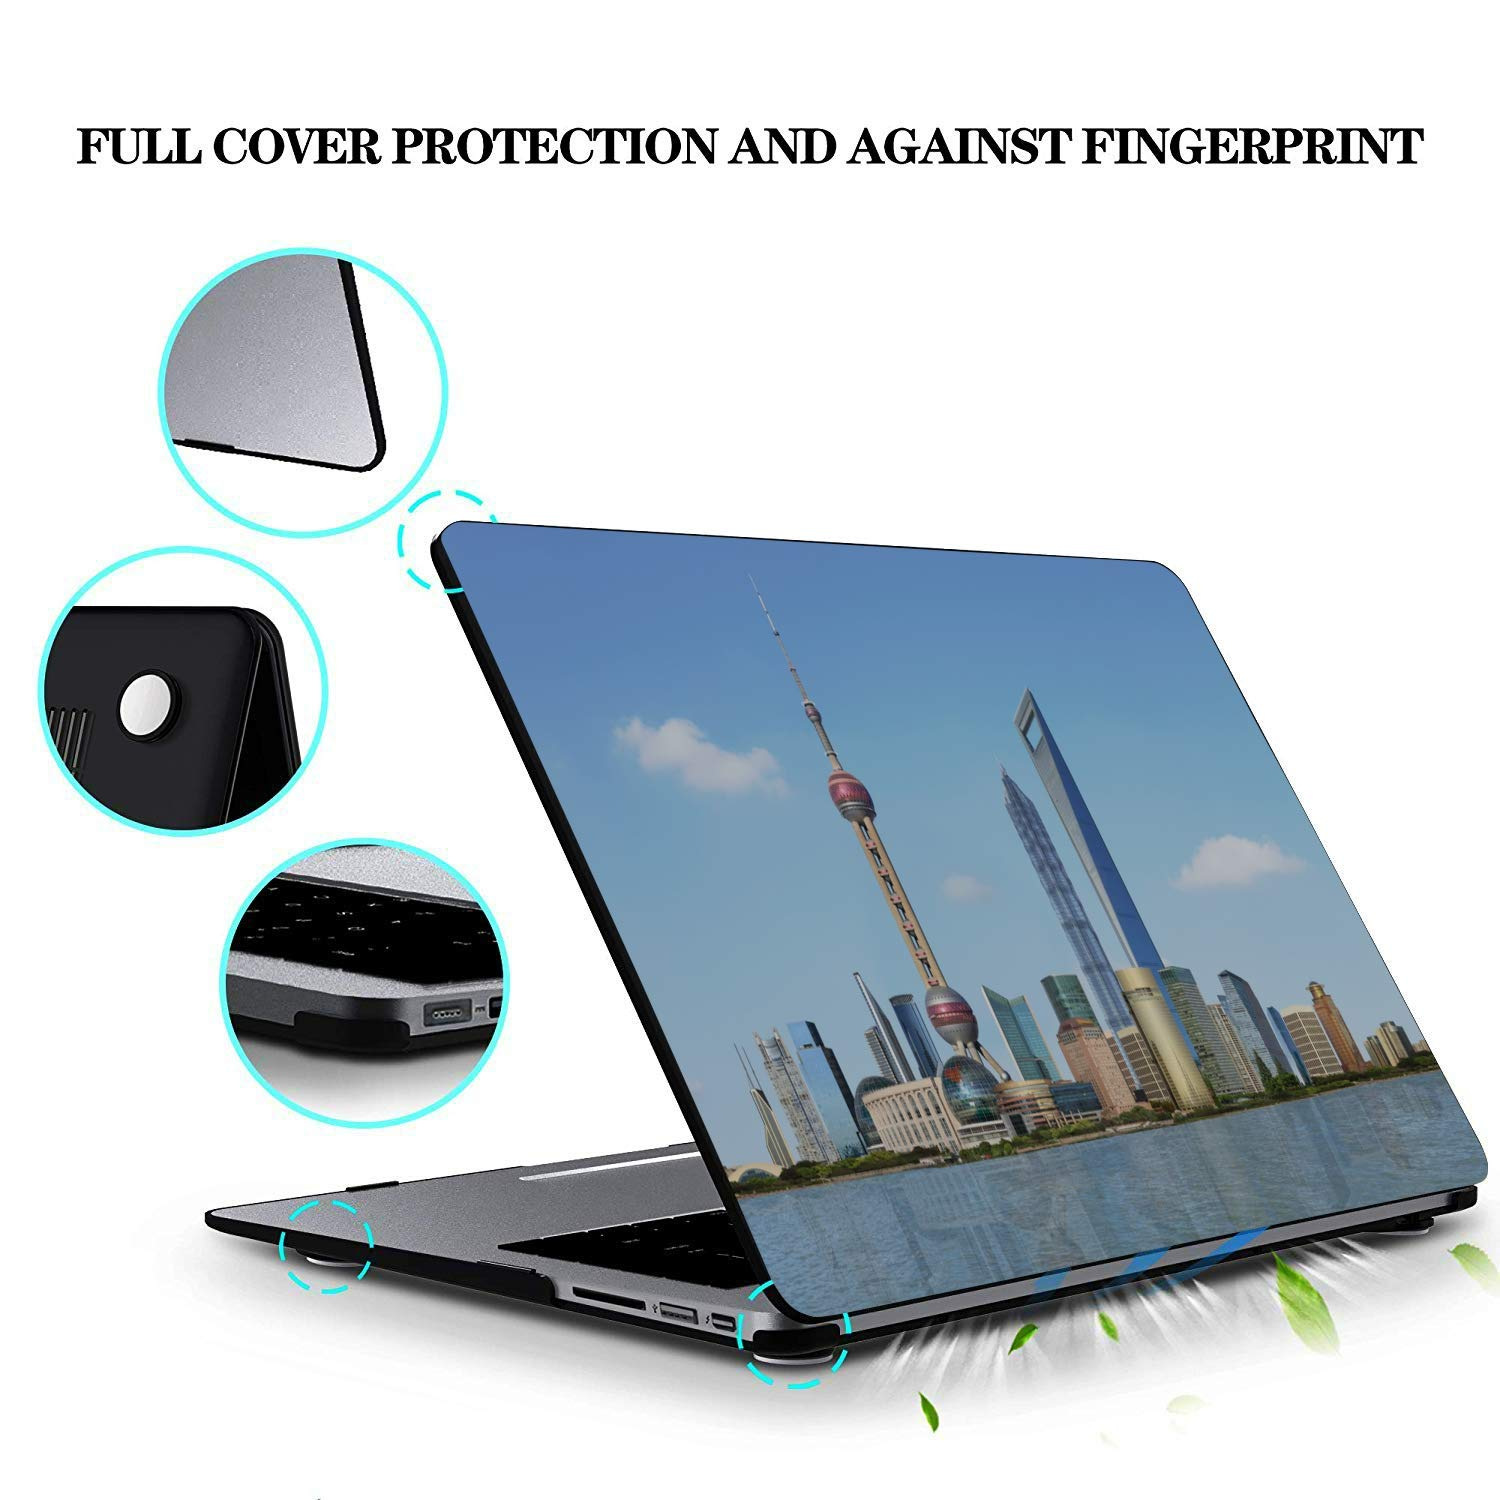 MacBook Computer Case Shiny Retro Noble Pentagram Sky Plastic Hard Shell Compatible Mac Air 11 Pro 13 15 MacBook Cover 15 Inch Protection for MacBook 2016-2019 Version